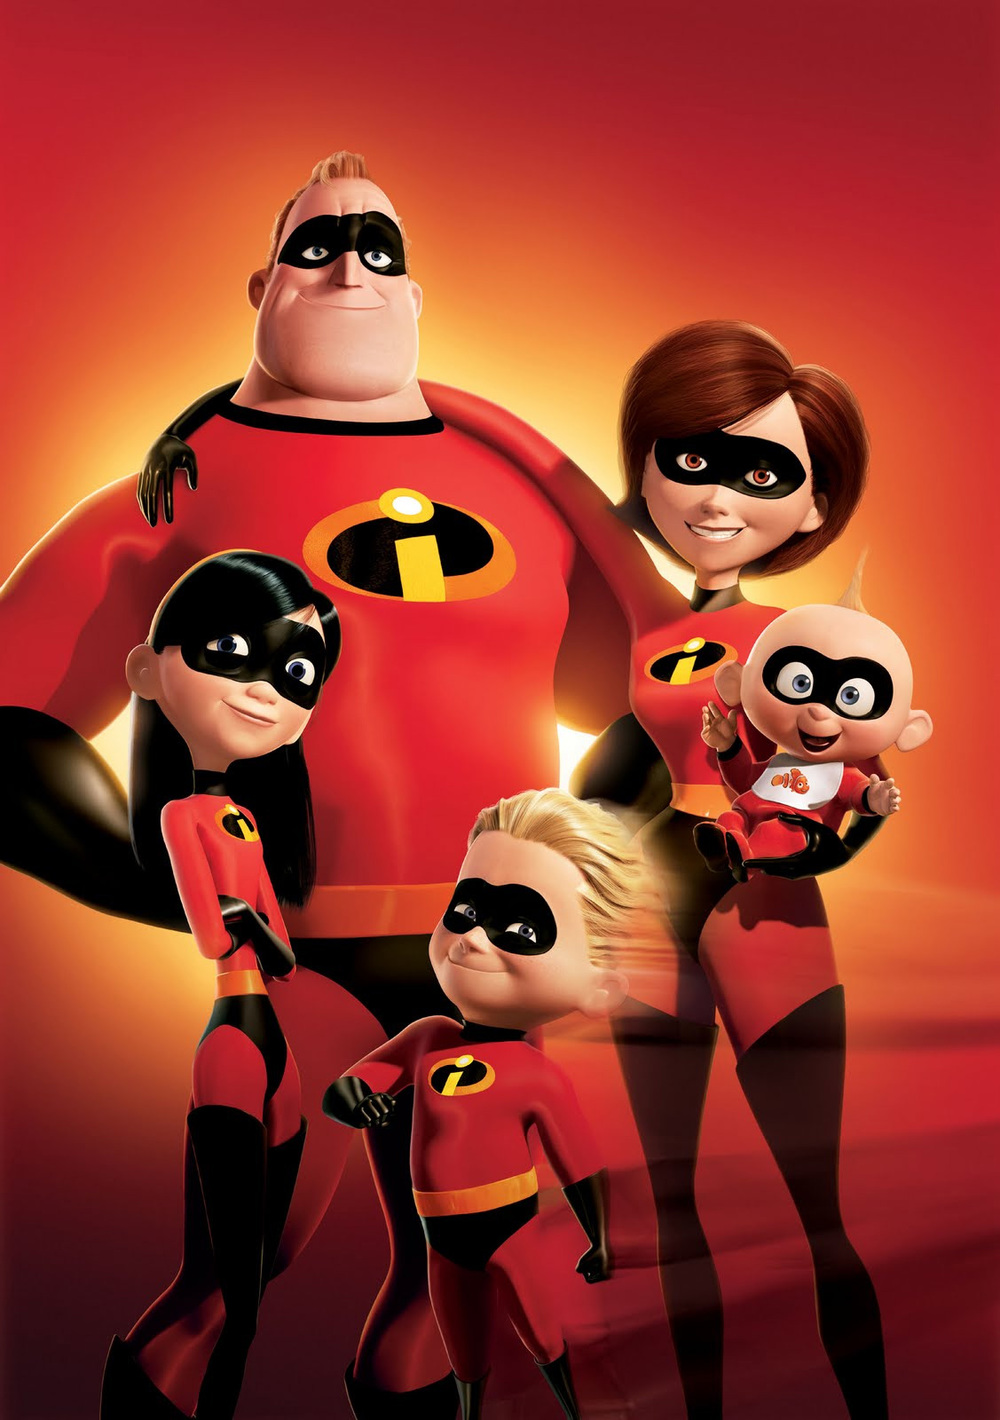 Incredibles Sex Stories Ideal educational films that kids will enjoy - new kids center